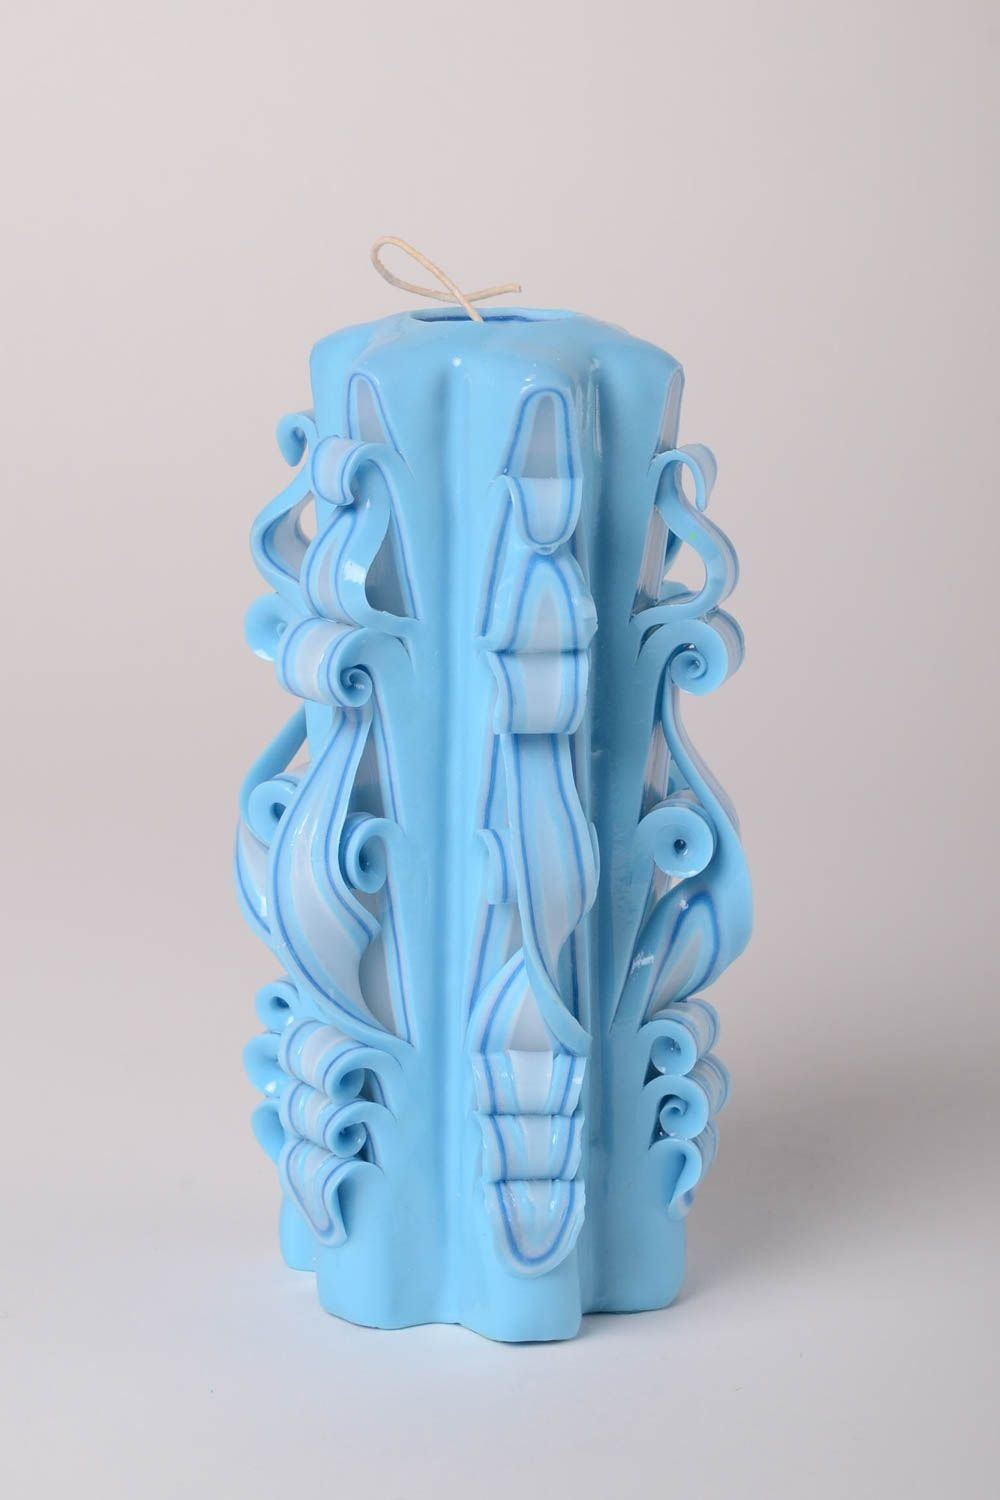 Handmade Blue Paraffin Candle Decorative Candle Gifts For Girls Bedroom Decor